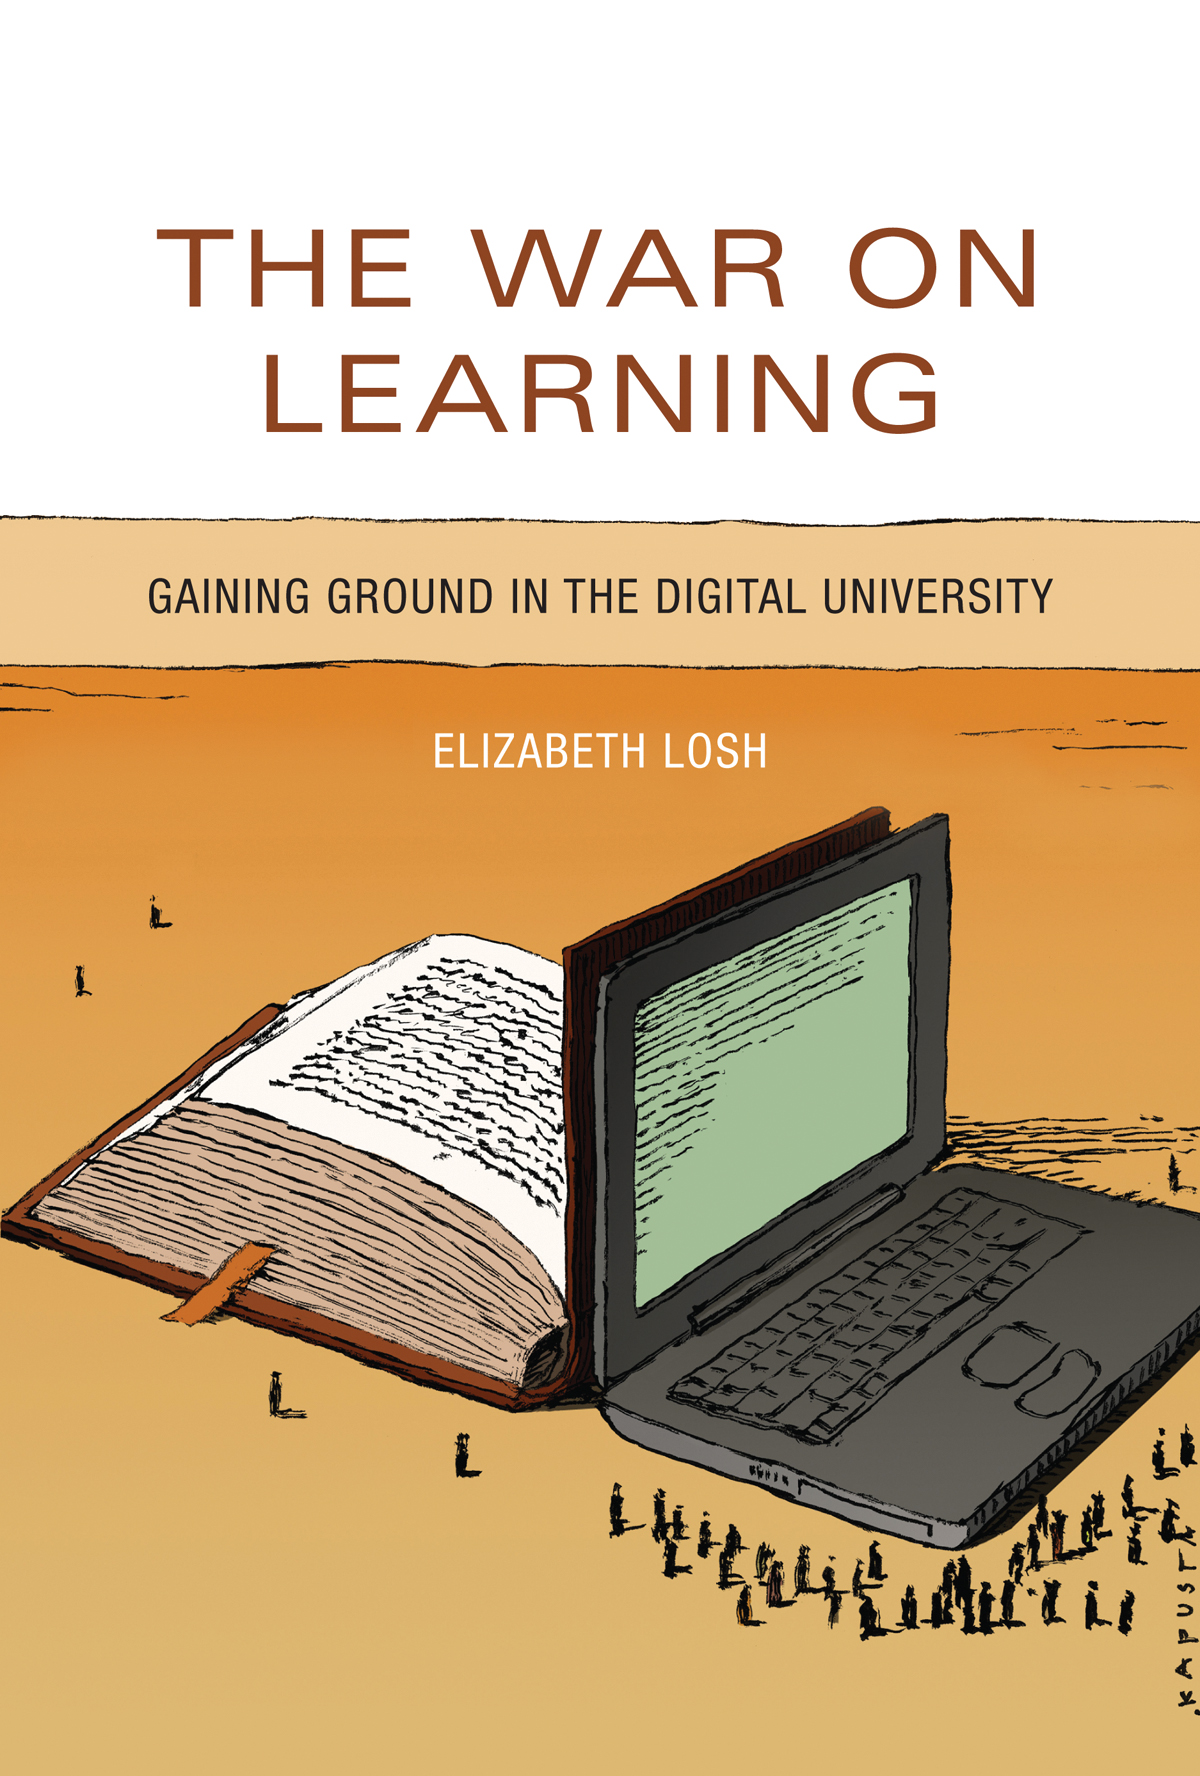 Cover of The War on Learning. Caption includes links to find the book.